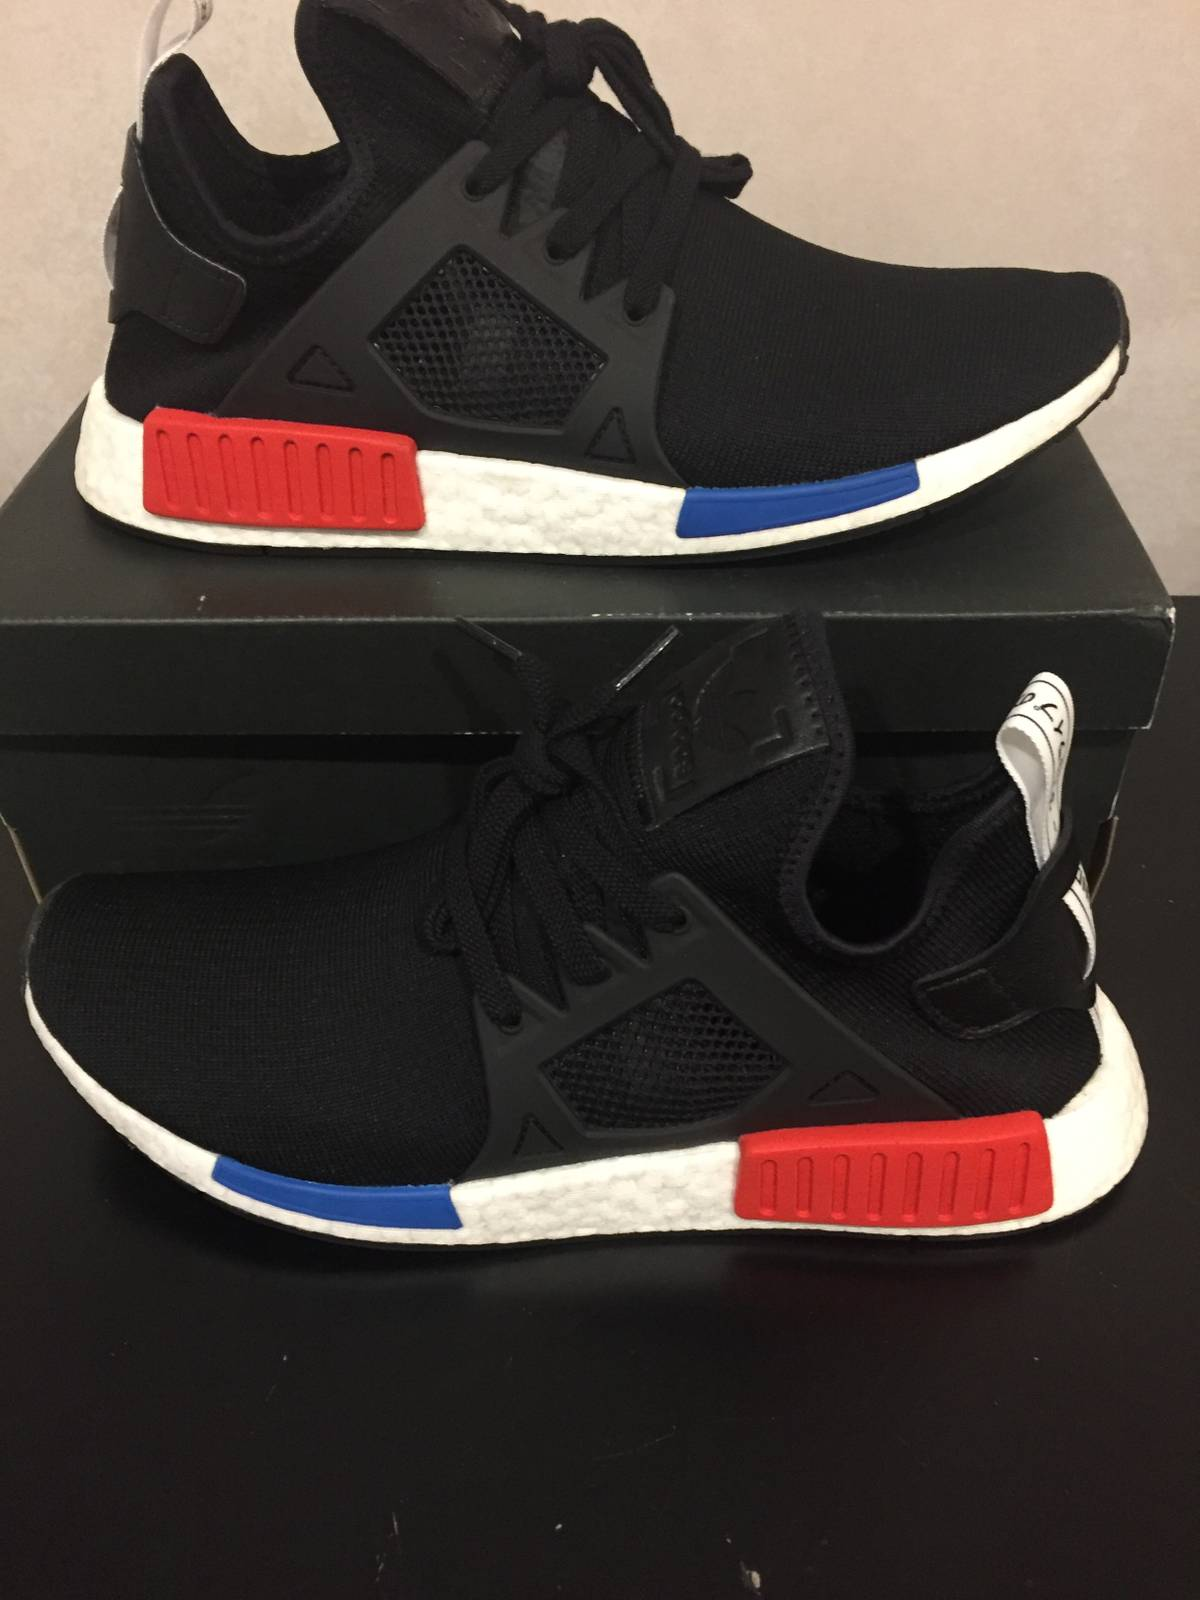 c478a94126799 Adidas NMD XR1 OG Size 10.5 - Low-Top Sneakers for Sale - Grailed